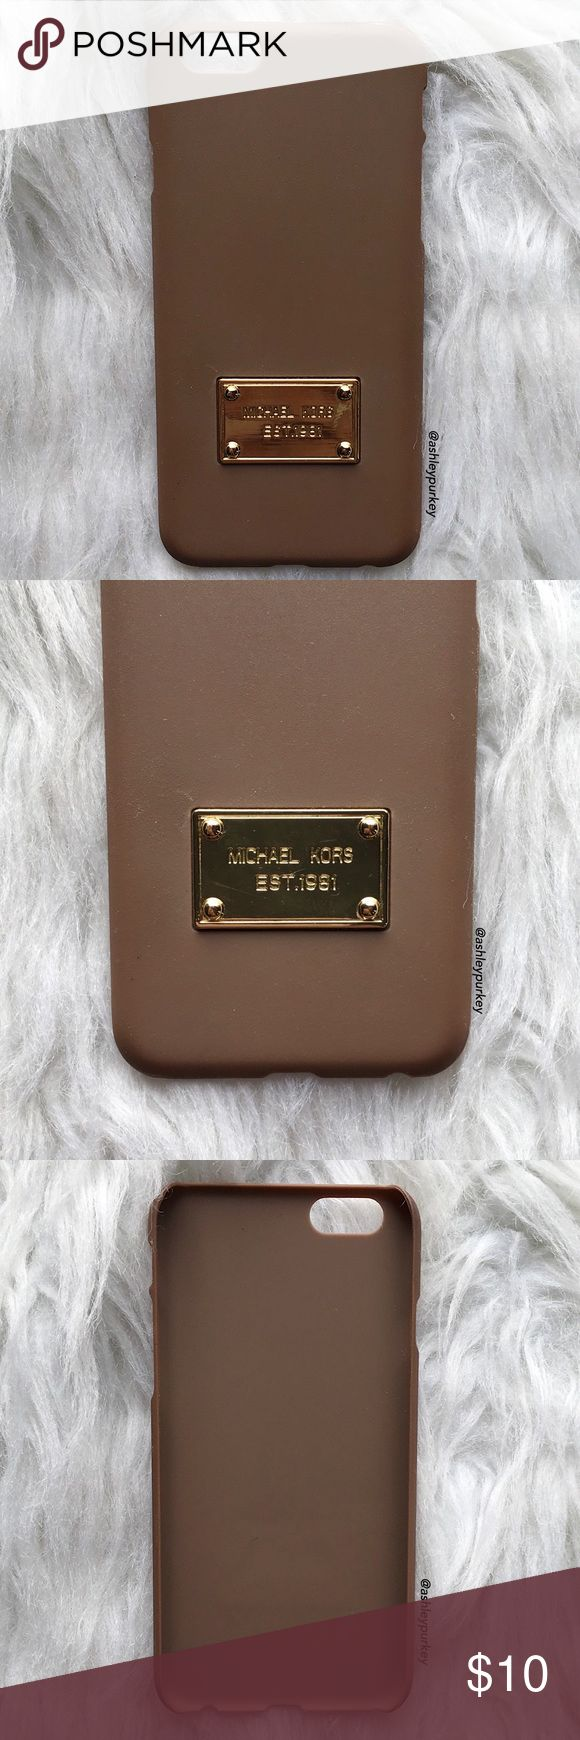 """Michael Kors played brown iPhone 6/6s phone case ❗ this is a good condition USED iPhone 6/6s case. this is not from my boutique line.   •iPhone 6/6s (4.7"""")  •hard plastic   •usual signs of use, no major damage   •no trades    *please make sure you purchase the correct size case. i am not responsible if you purchase the wrong size  item #: 47 Michael Kors Accessories Phone Cases"""